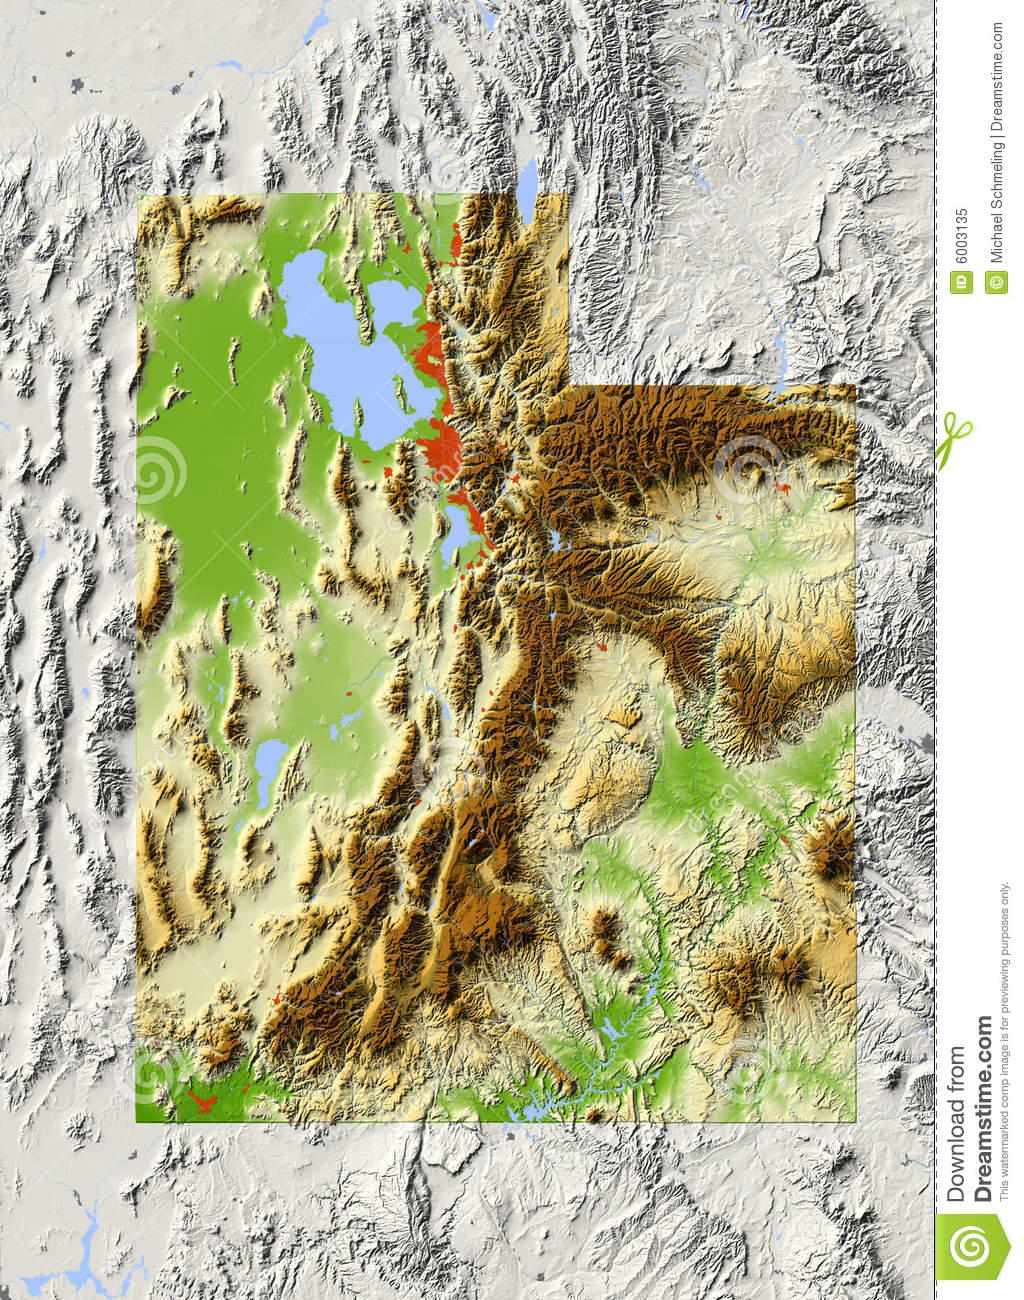 map of usa and rivers with Royalty Free Stock Photo Utah Shaded Relief Map Image6003135 on File United States in its region  Guam special in addition Smith River Belt Creek Drainage Divide Area Landform Origins North Of Little Belt Mountains Montana Usa additionally Three Day Jokulsarlon furthermore Royalty Free Stock Photo Utah Shaded Relief Map Image6003135 likewise Tennesseemap.